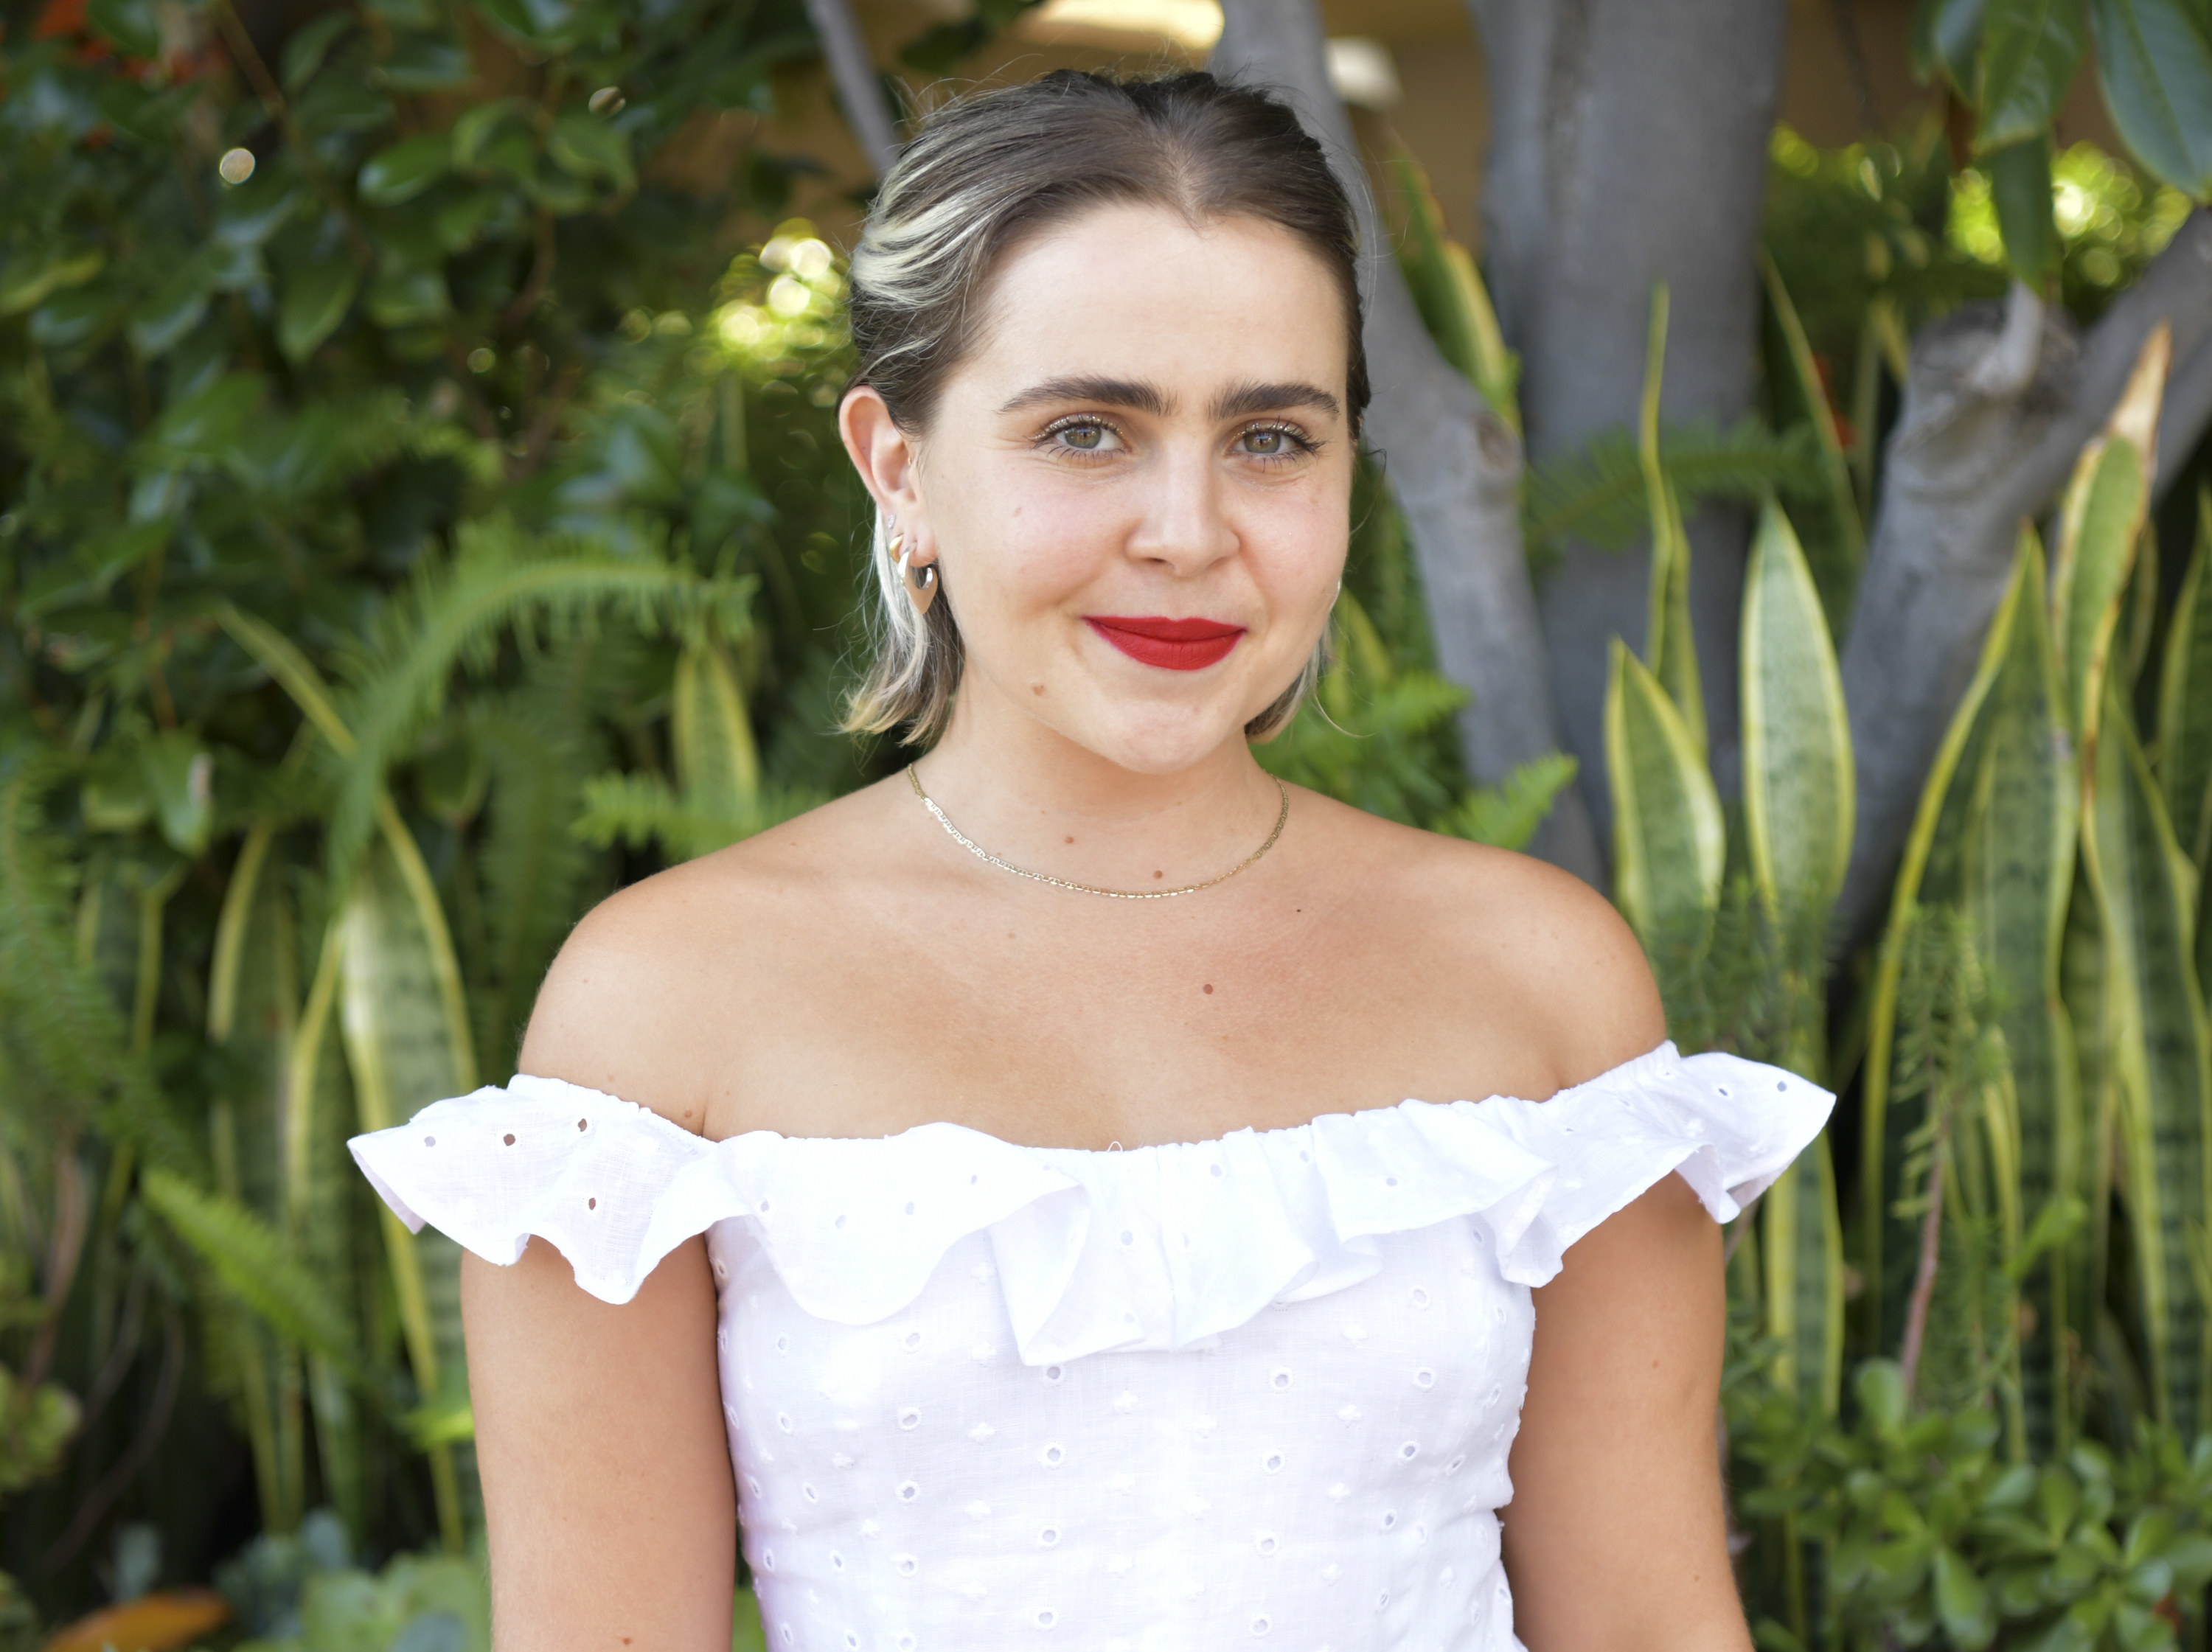 Mae wears a white off the shoulder eyelet top